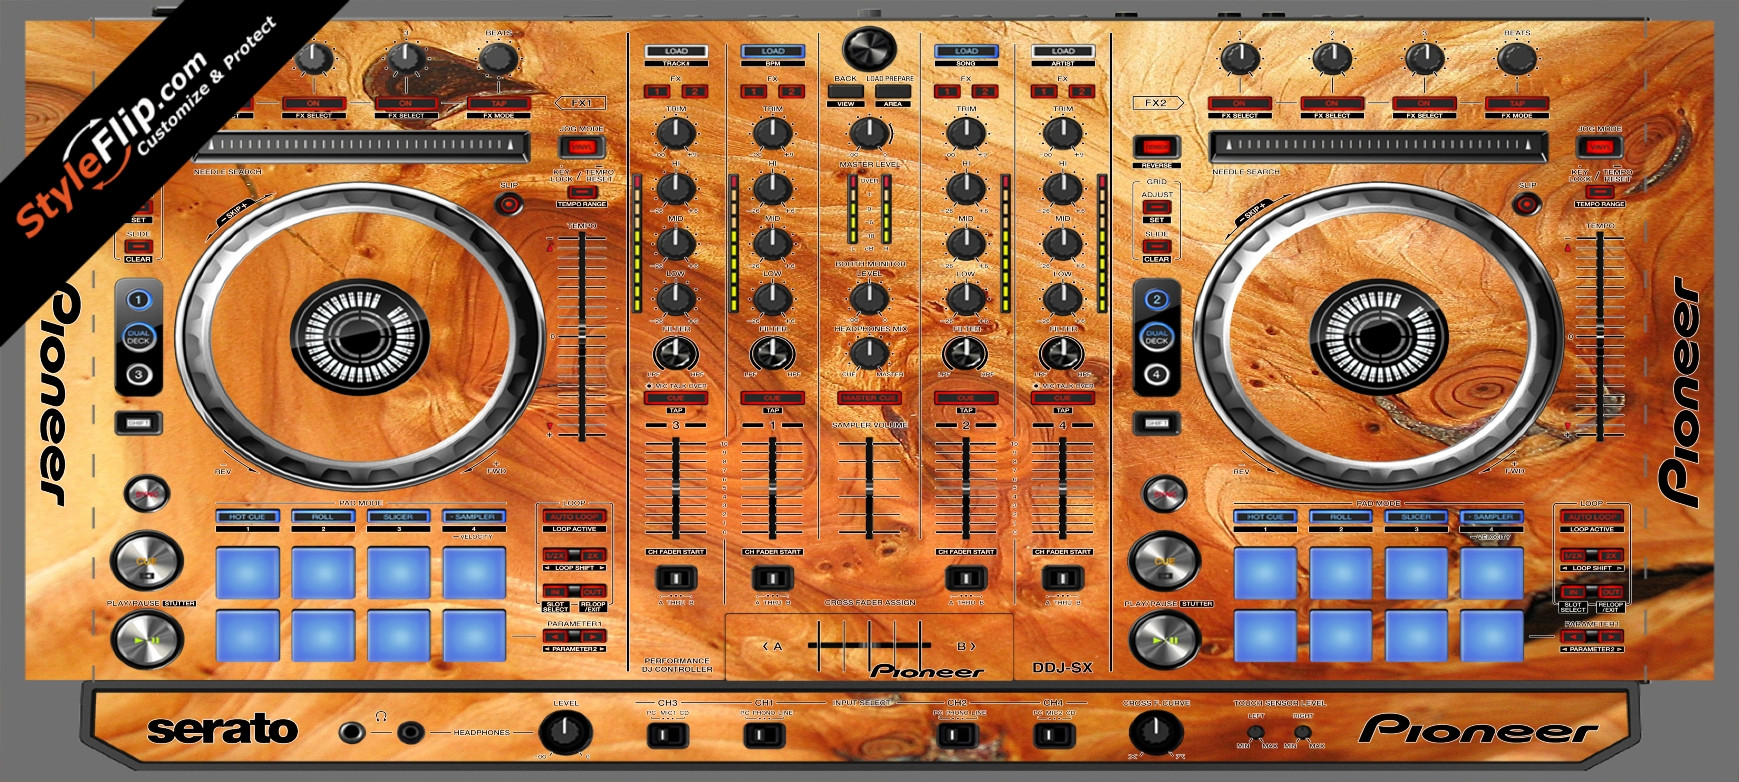 Stained Wood Pioneer DDJ-SX